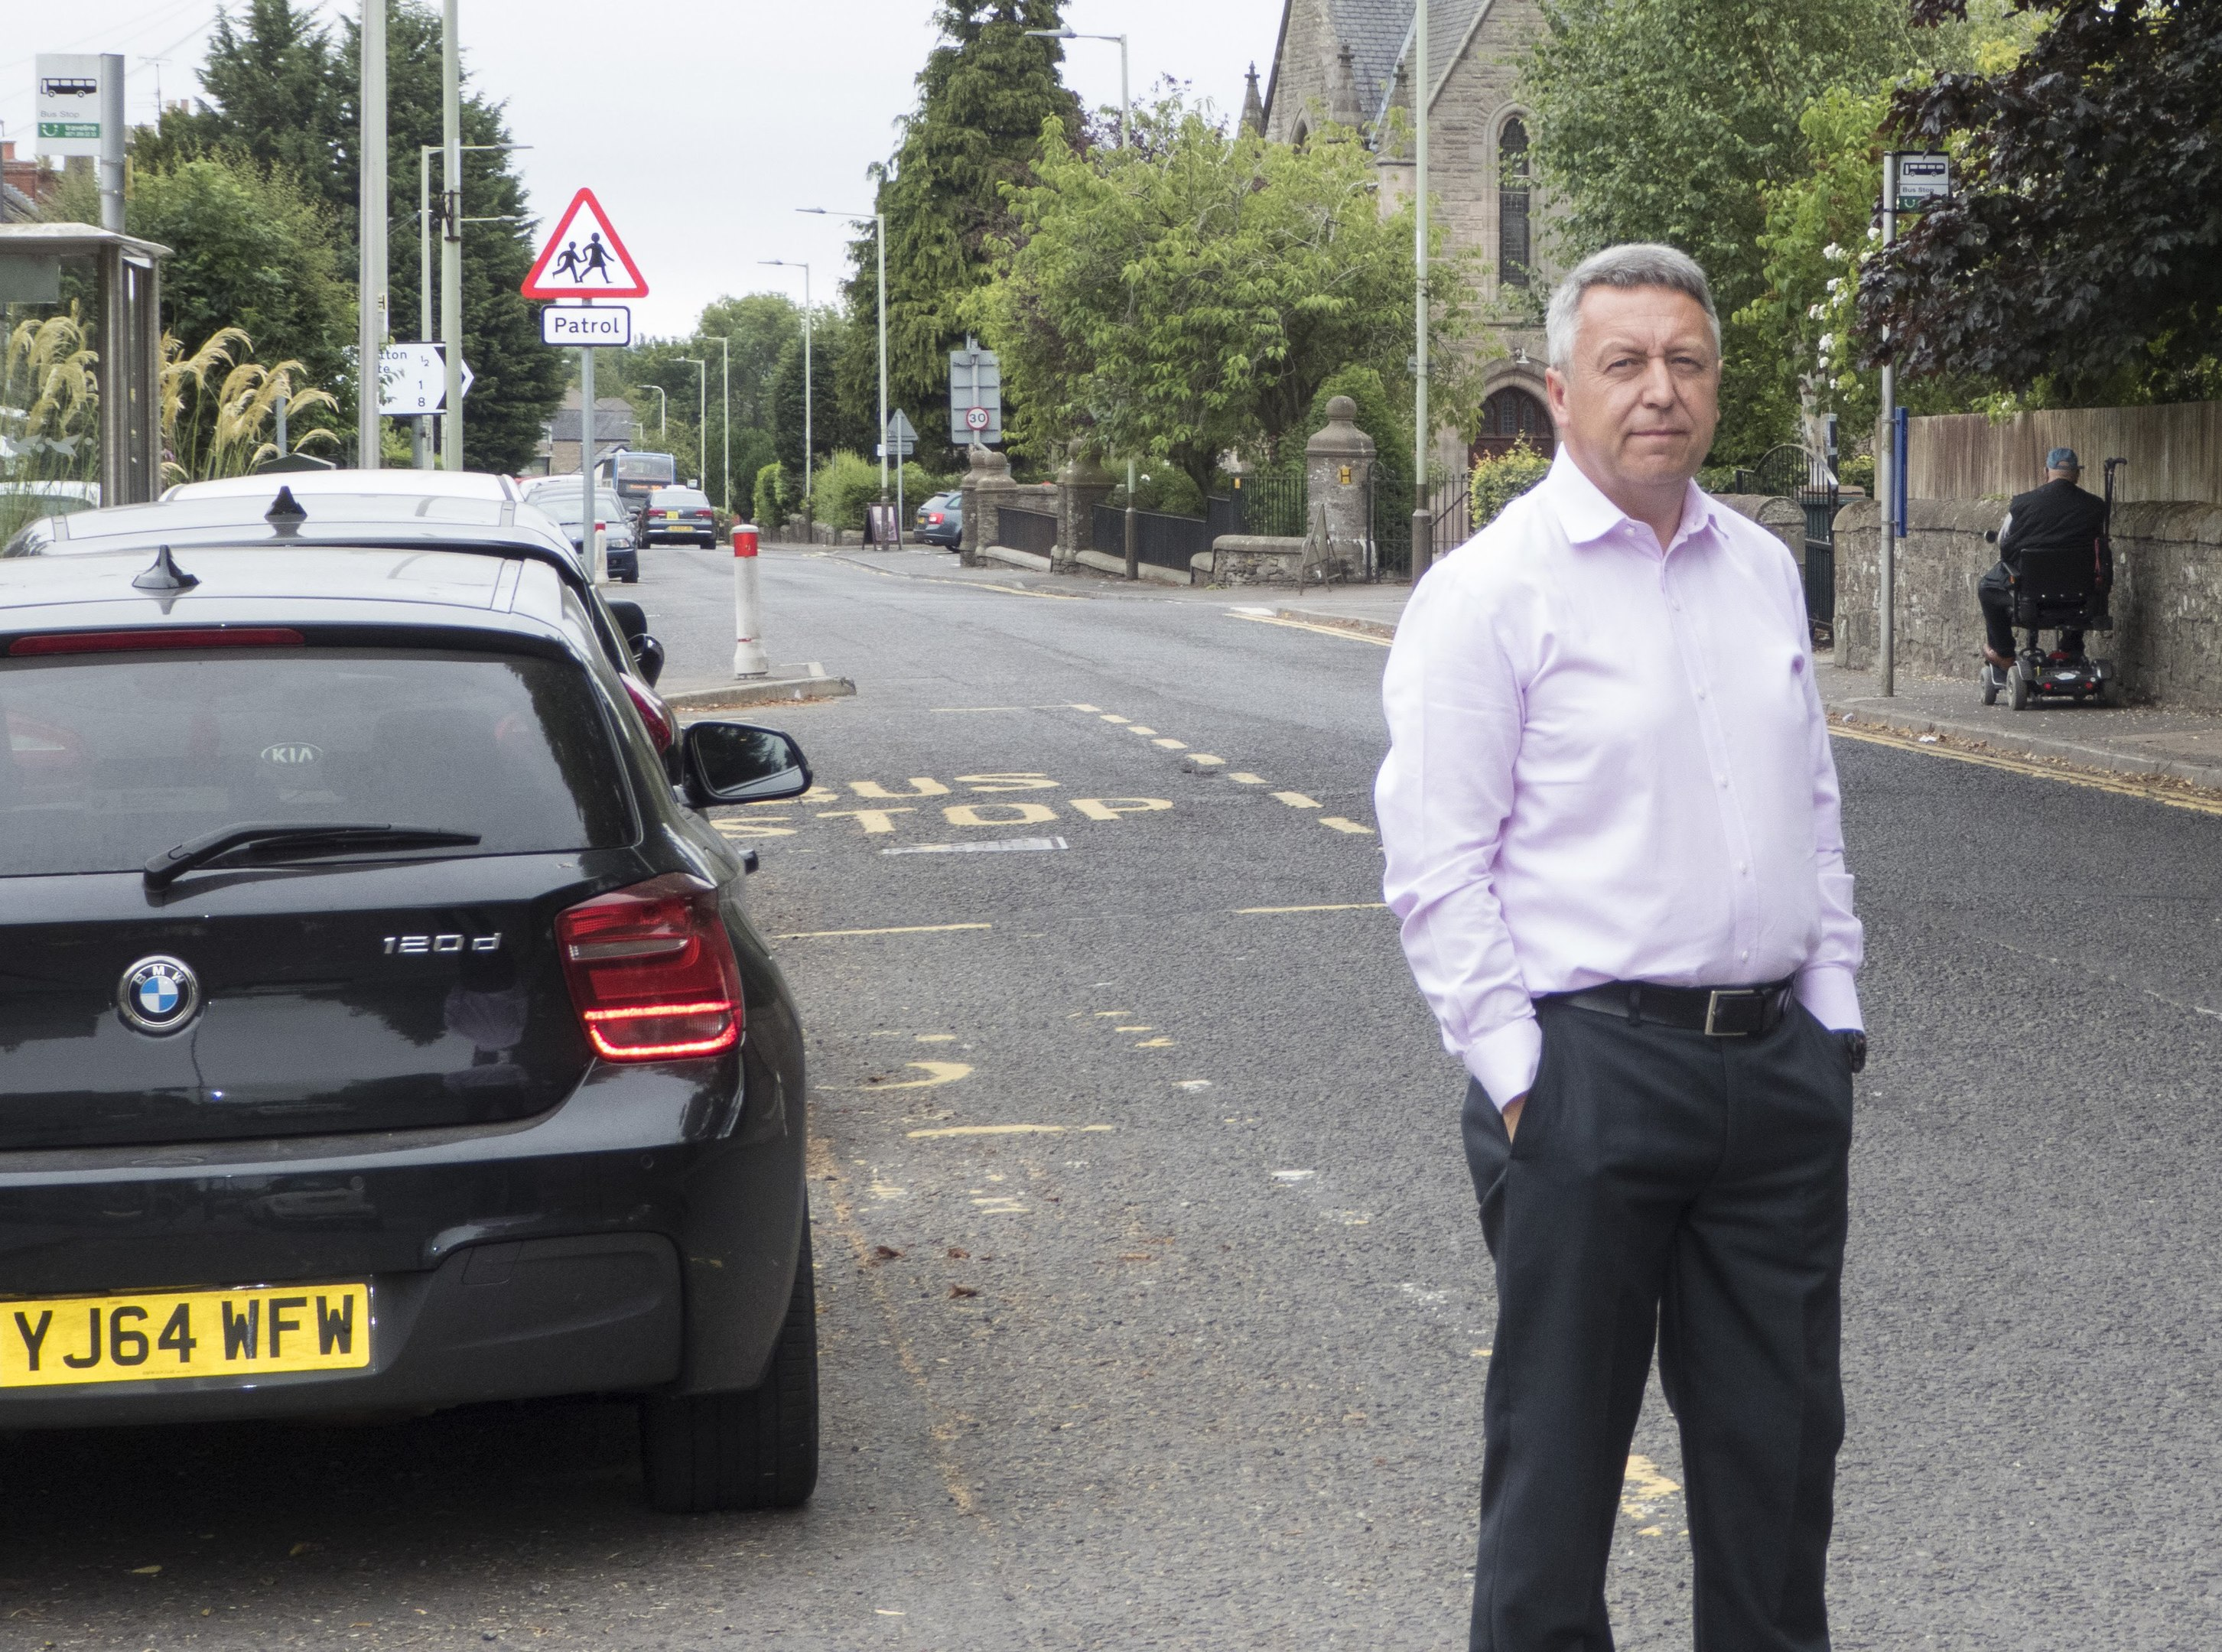 Councillor Angus Forbes wants more safety measures in Invergowrie.